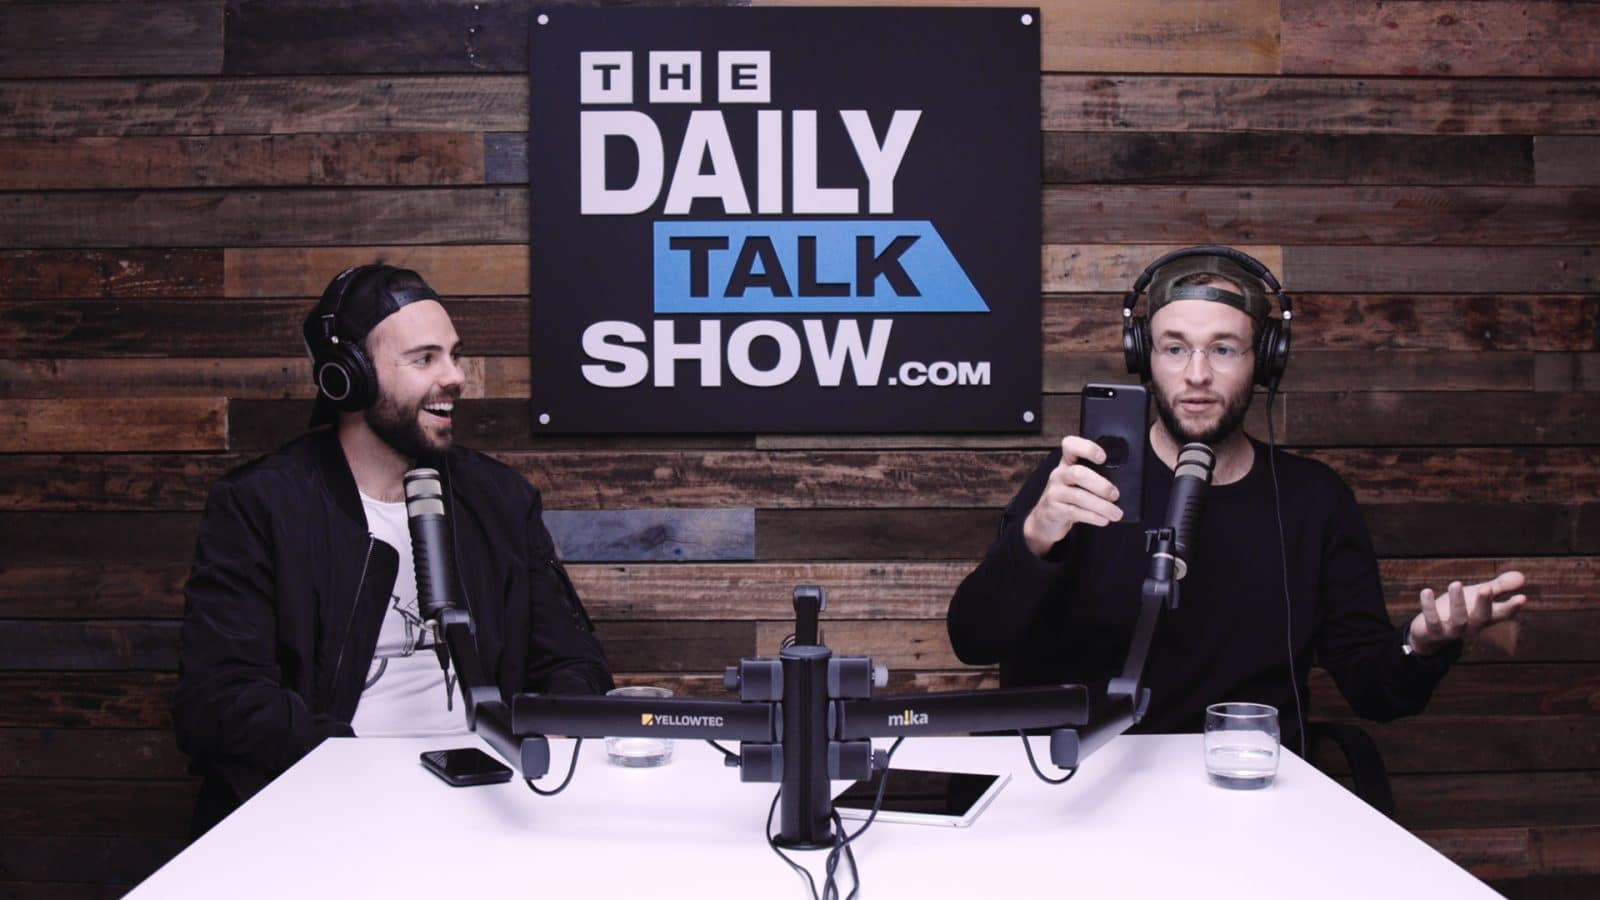 The-Daily-Talk-Show-409